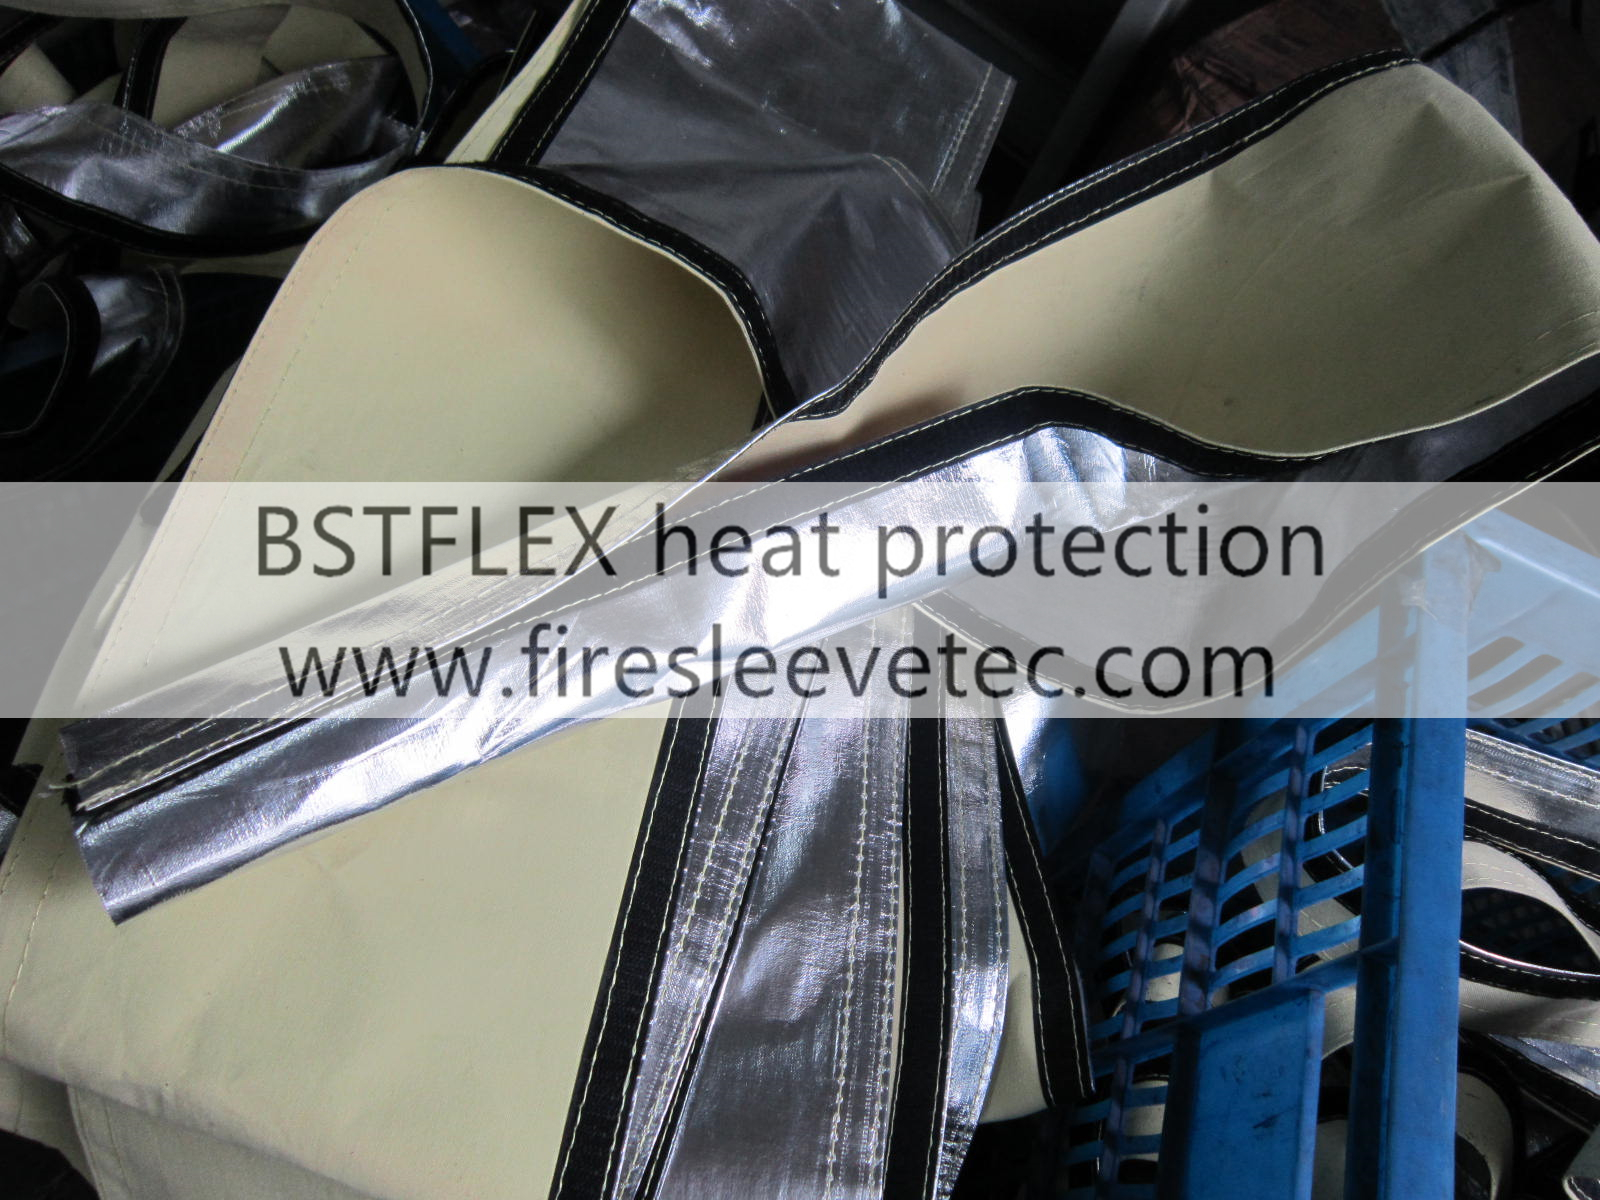 Thermal Reflective Sleeve